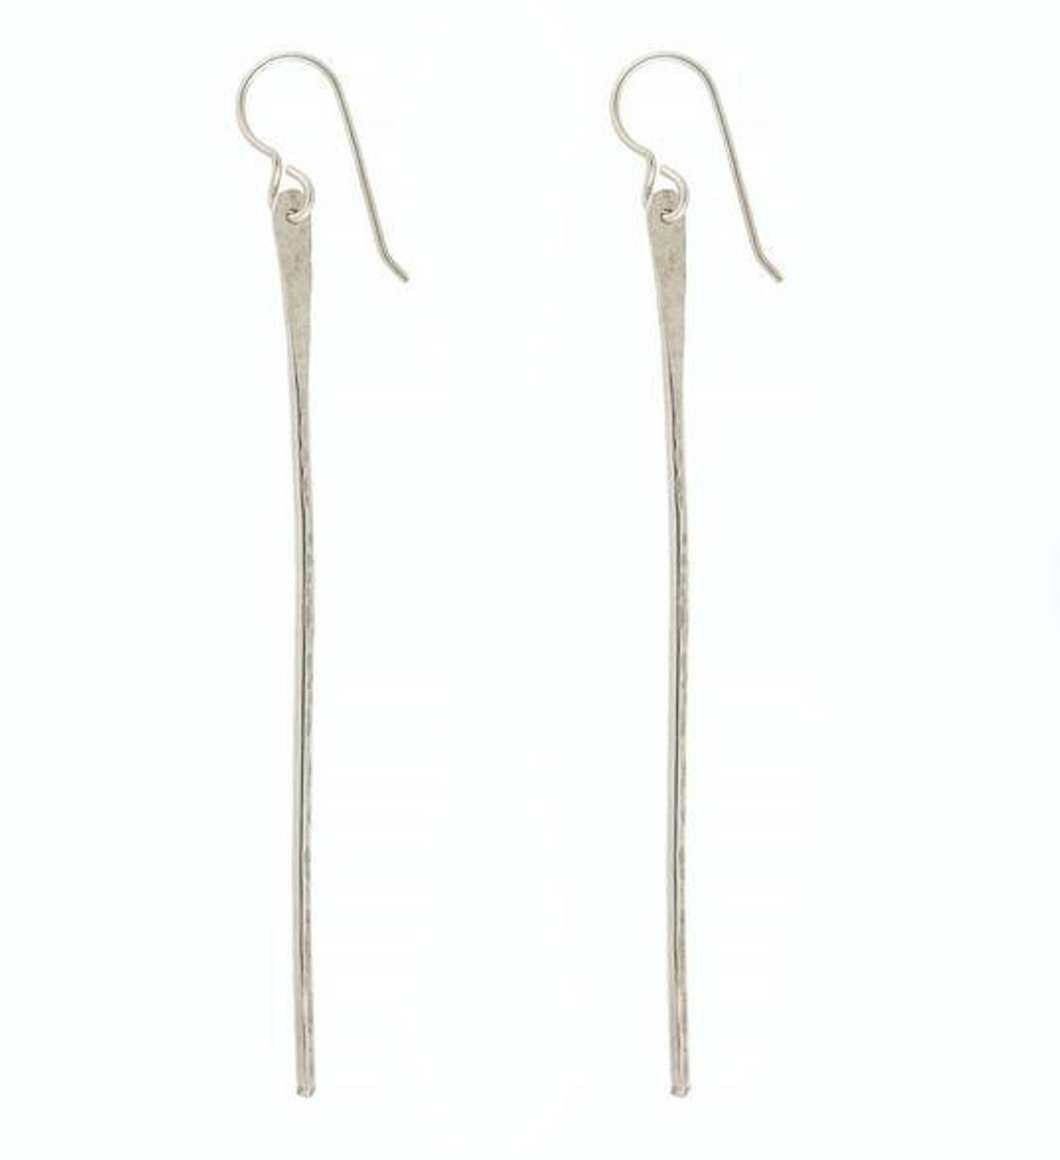 Pahi Silver Spike Earrings